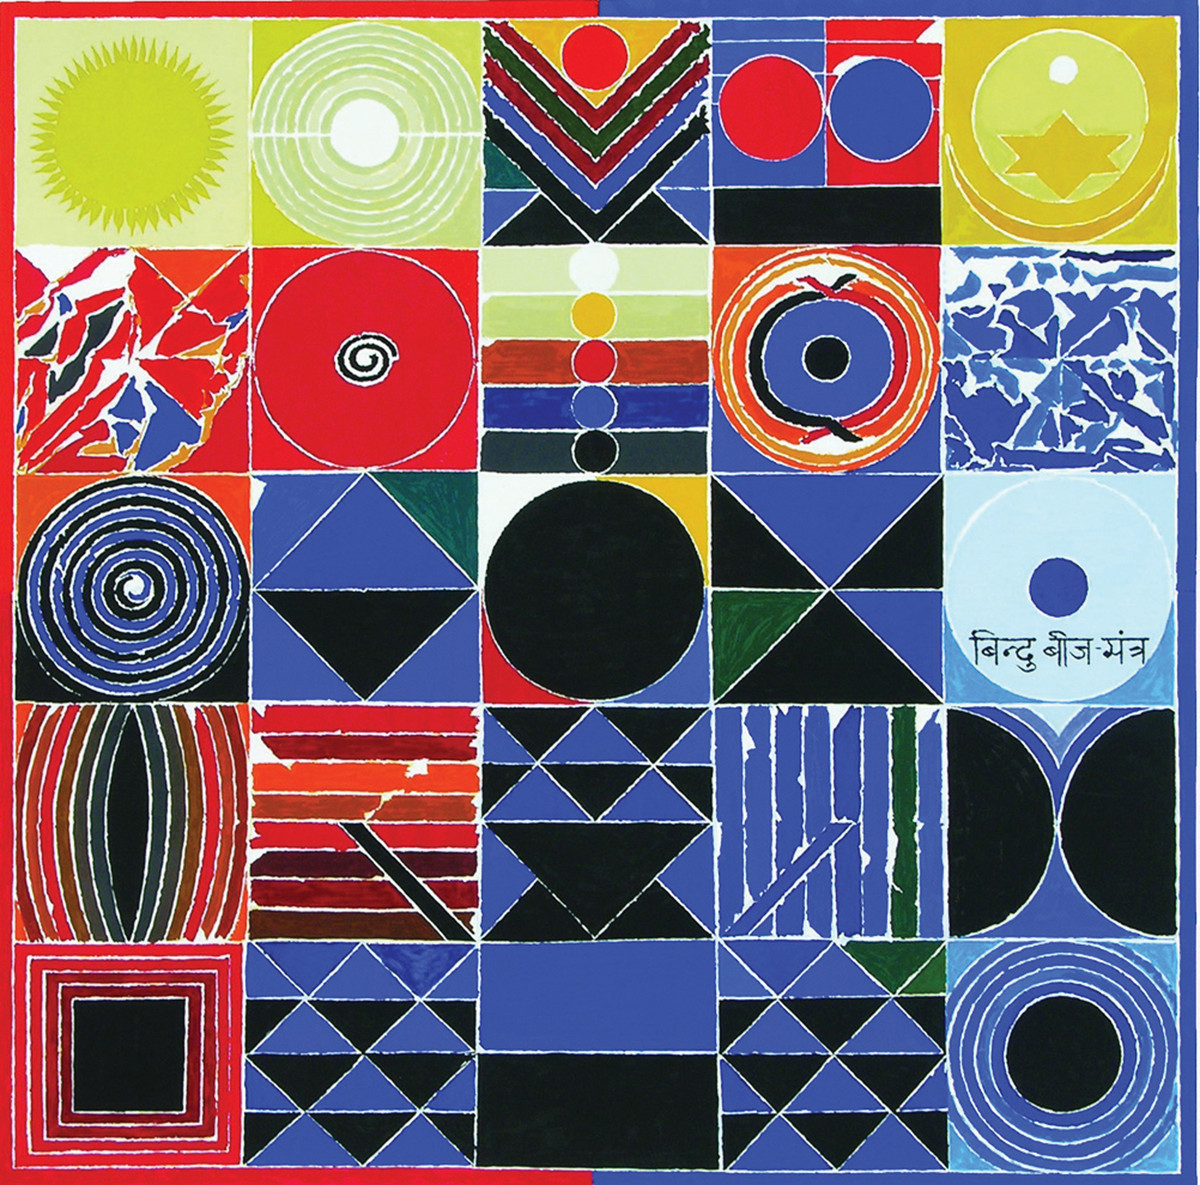 Bindu Bija-Mantra by S H Raza, Geometrical Serigraph, Serigraph on Paper, Blue color